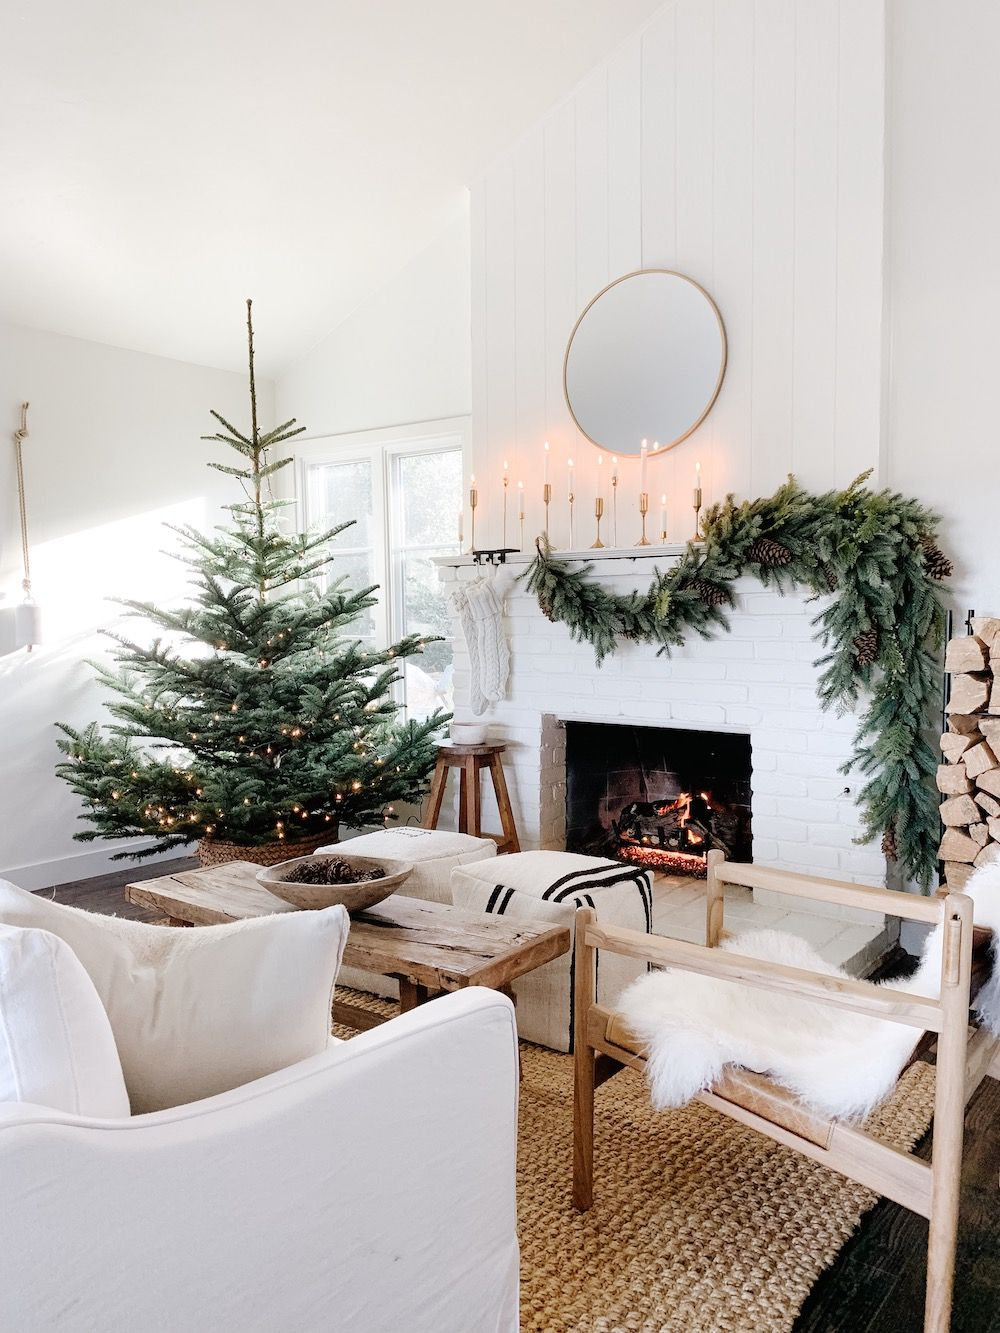 Photo of Holiday Home Tour: This Dreamy Space Proves That White Is Actually the Most Festive Color